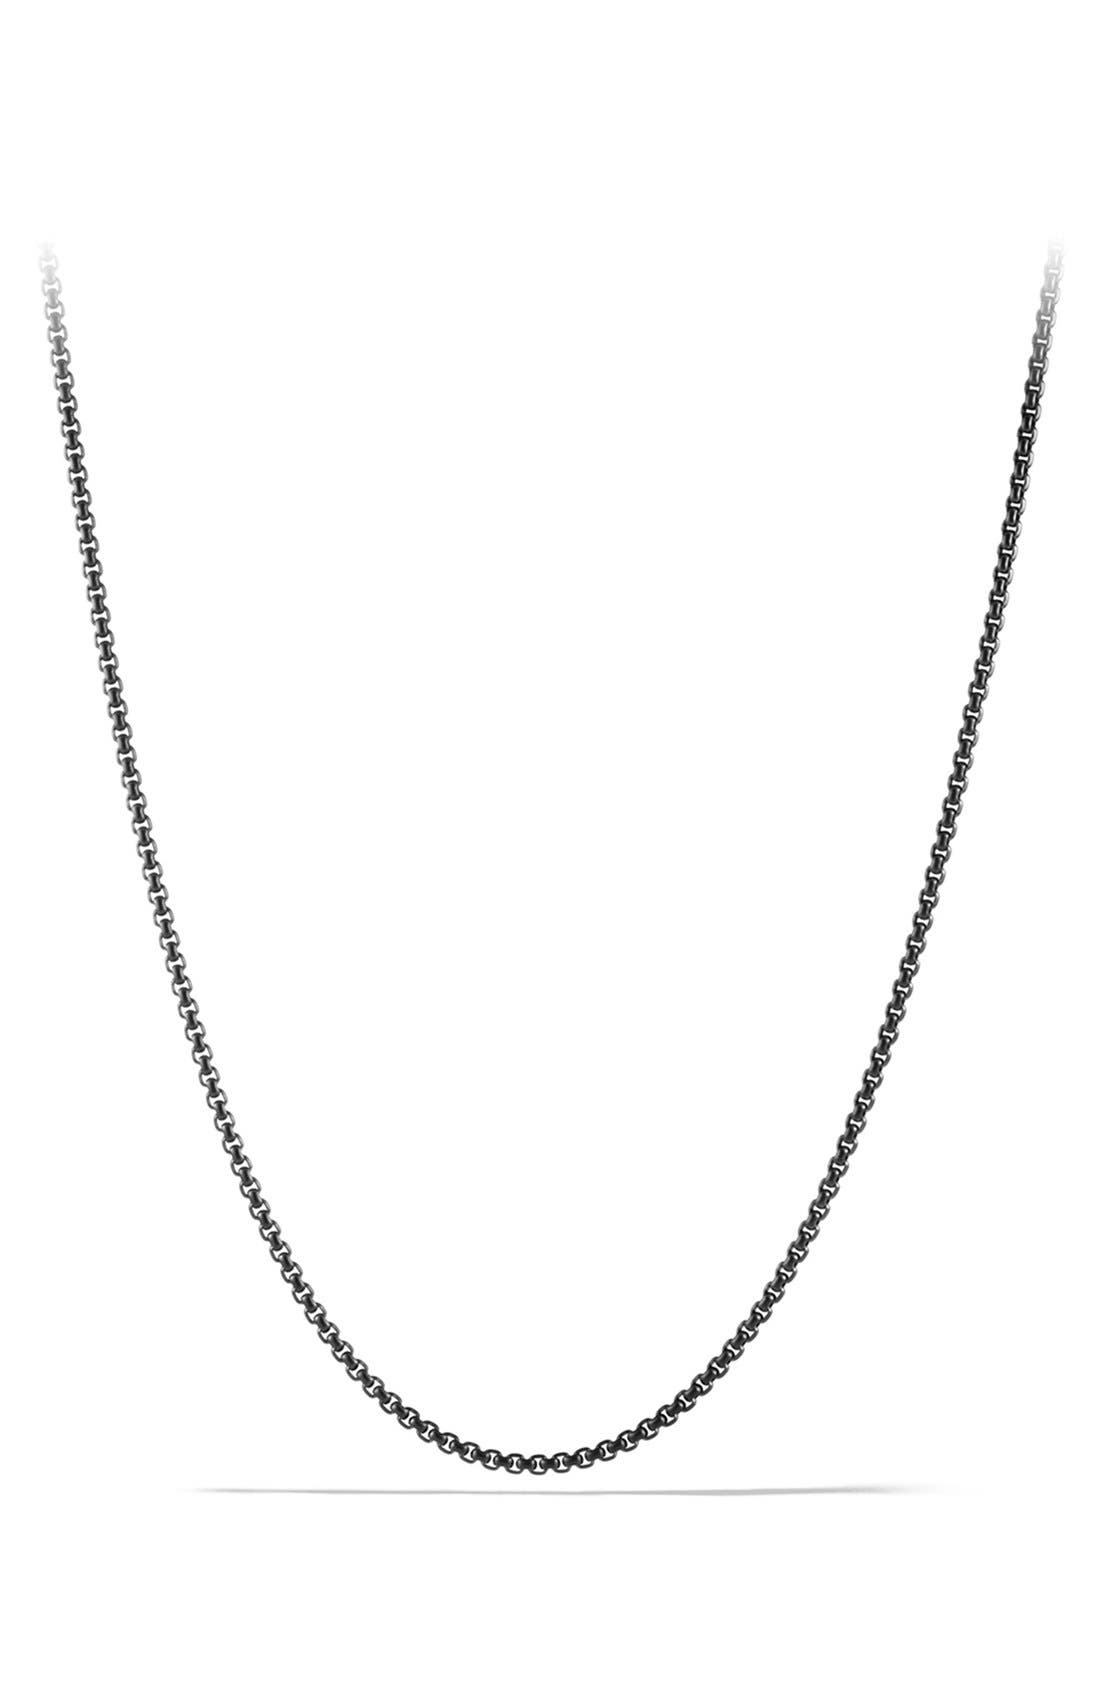 'Chain' Small Box Chain Necklace,                         Main,                         color, Stainless Steel